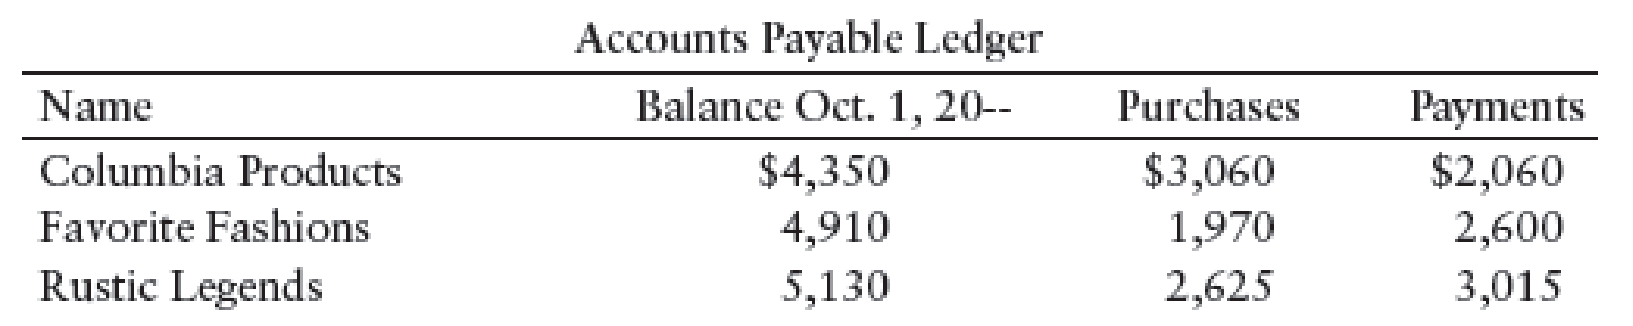 Chapter 11, Problem 8SEA, SCHEDULE OF ACCOUNTS PAYABLE Ryans Express, a retail business, had the following beginning balances